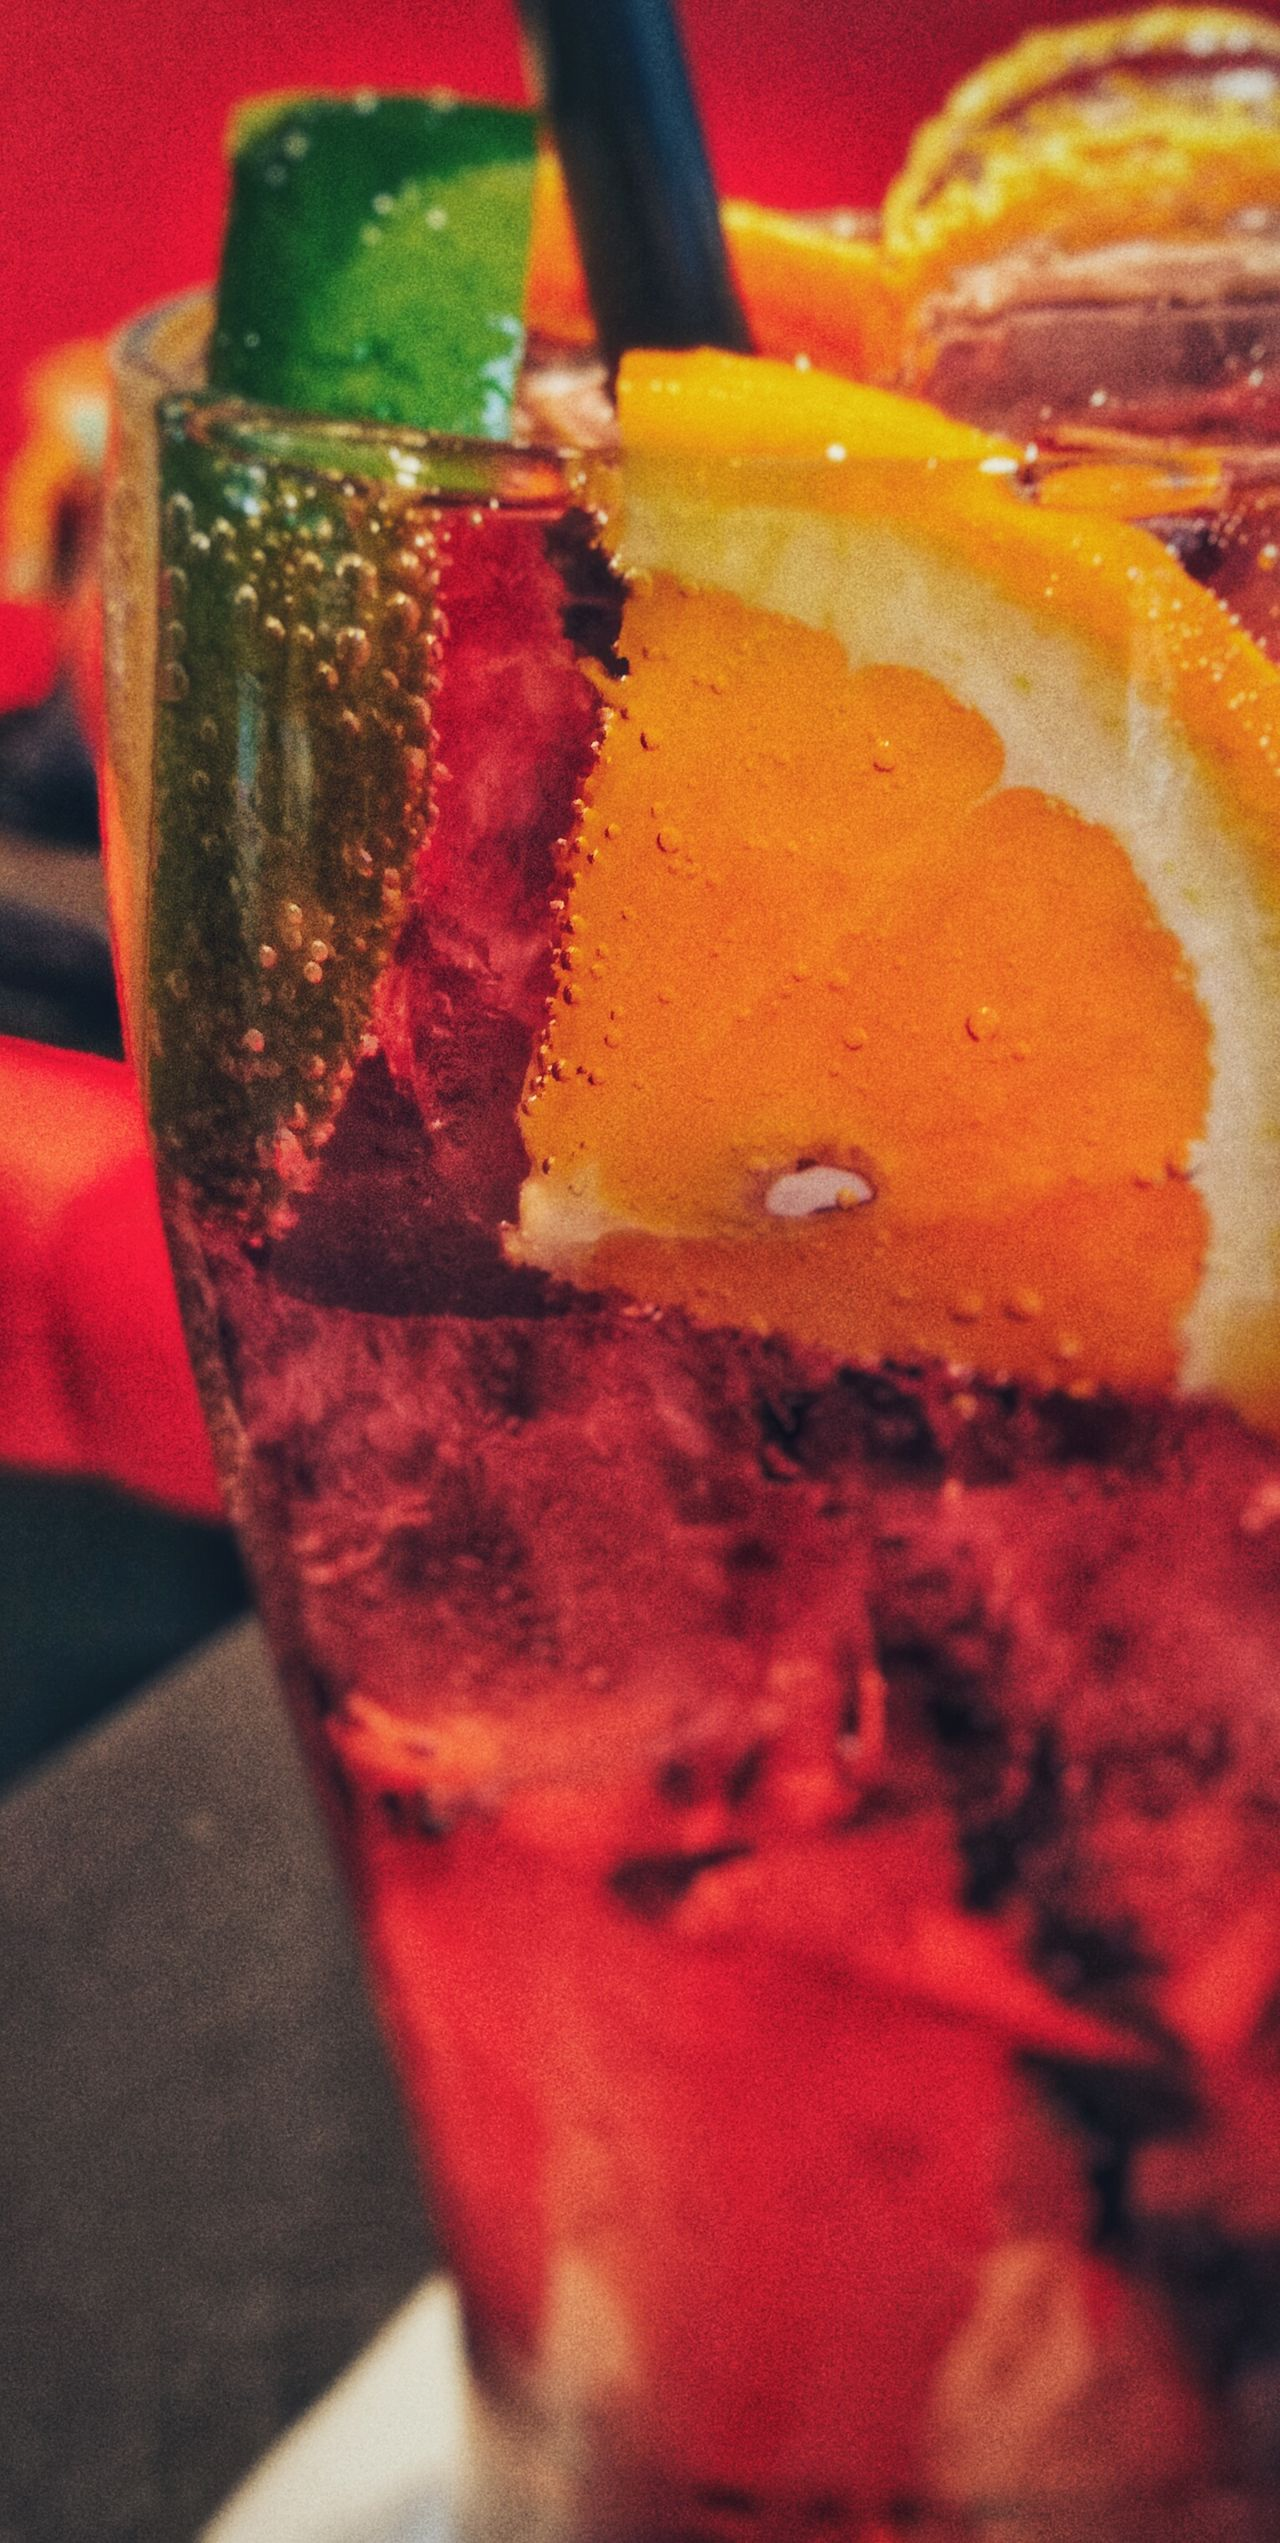 Colour Of Life Huawei Huaweip9lite Huaweiphotography Cocktails Orange Strawberry Red Red Color